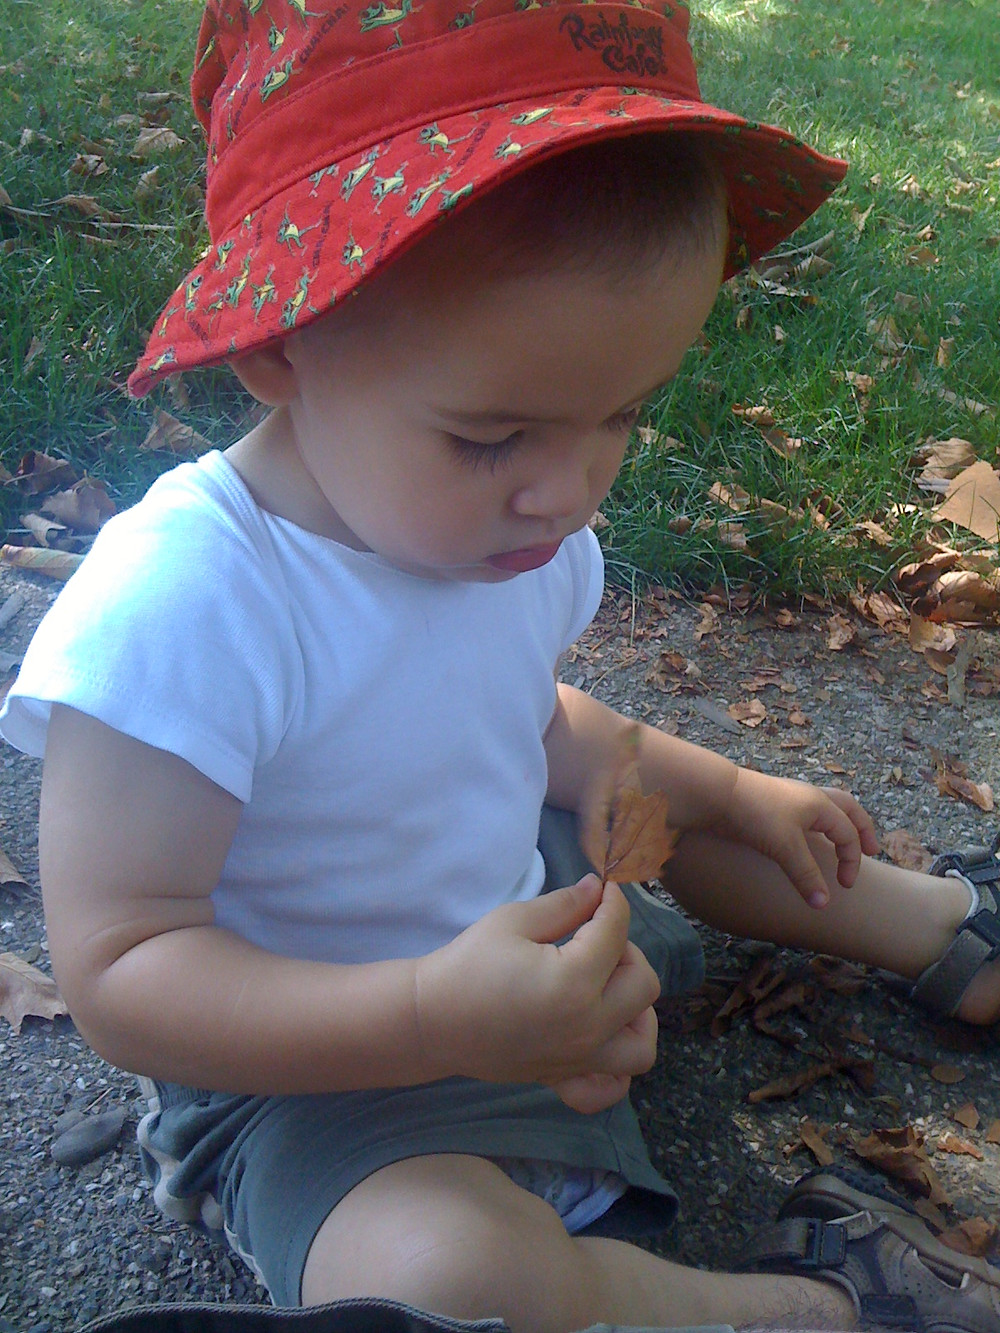 Toddler in a red hat, white t-shirt, and shorts. Sitting by the edge of the grass. Keeping me company while I pull weeds. He is holding a leaf.